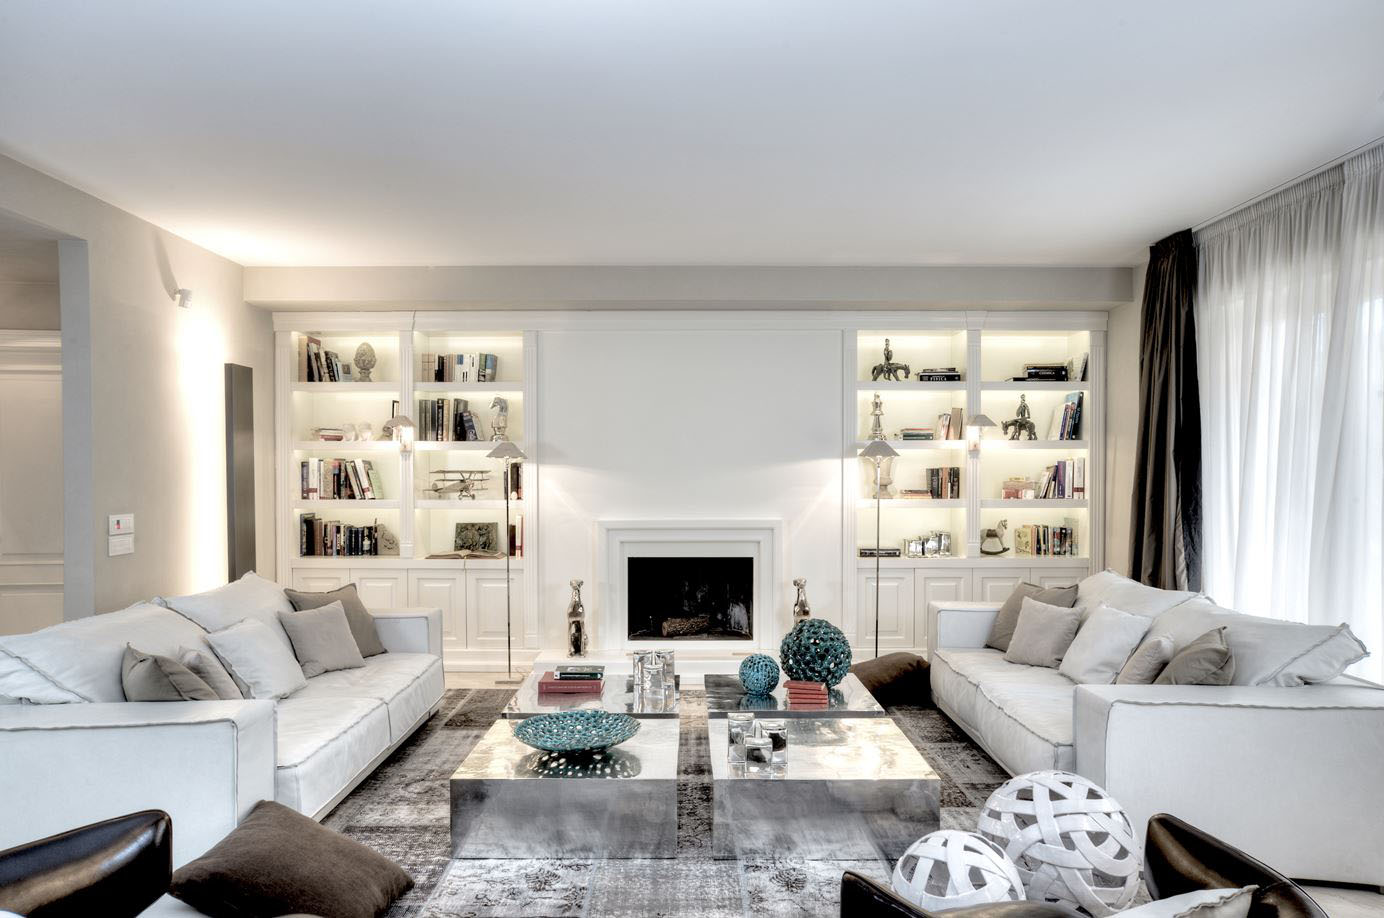 Interior home decorations luxury interior decorating ideas - Luxury Home Interior With Timeless Contemporary Elegance A Unique Home With White Themed Elegant Contemporary Decor